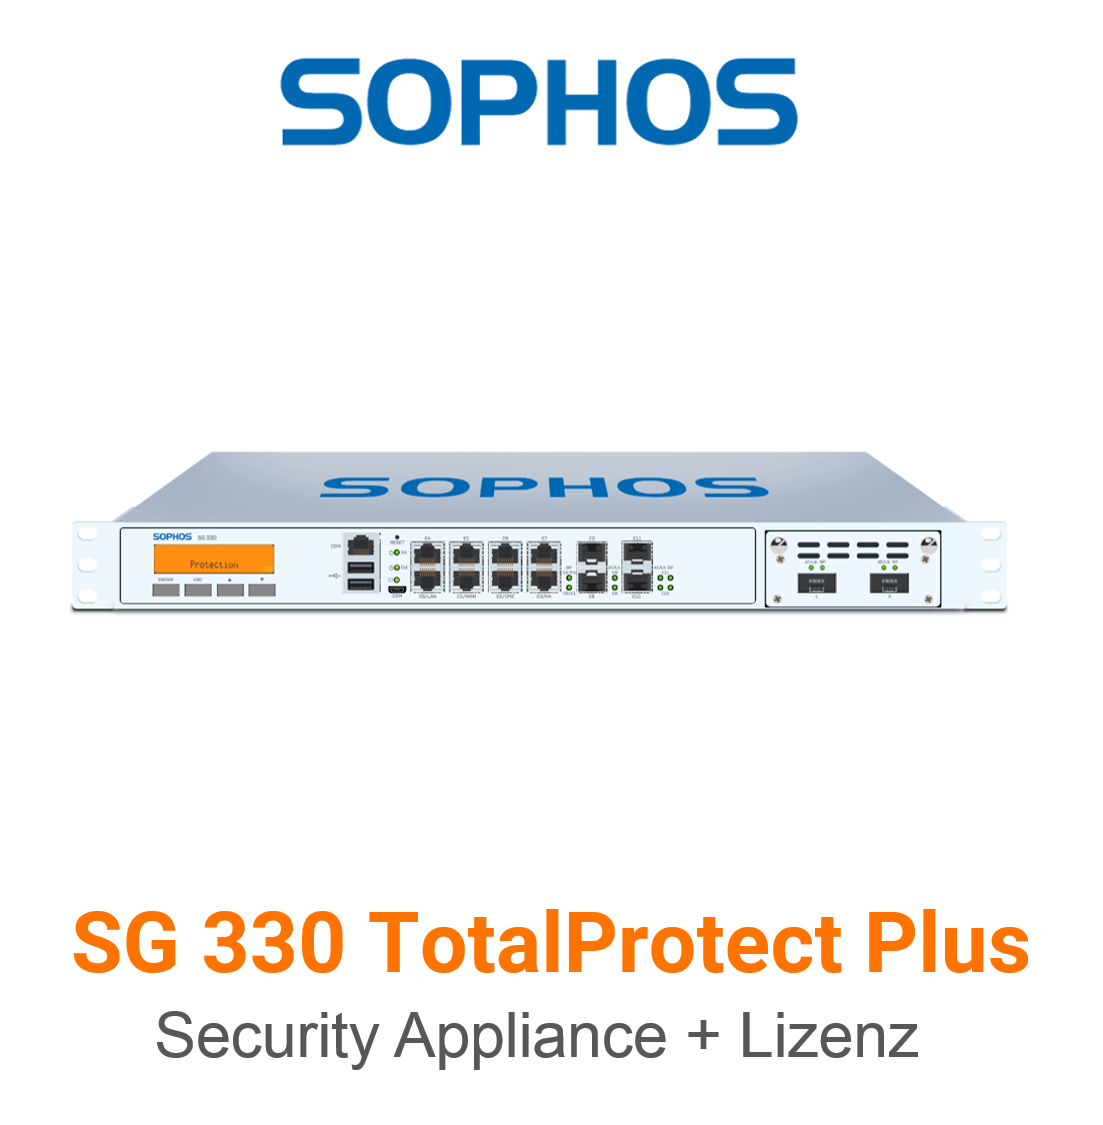 Sophos SG 330 TotalProtect Plus Bundle (Hardware + Lizenz)